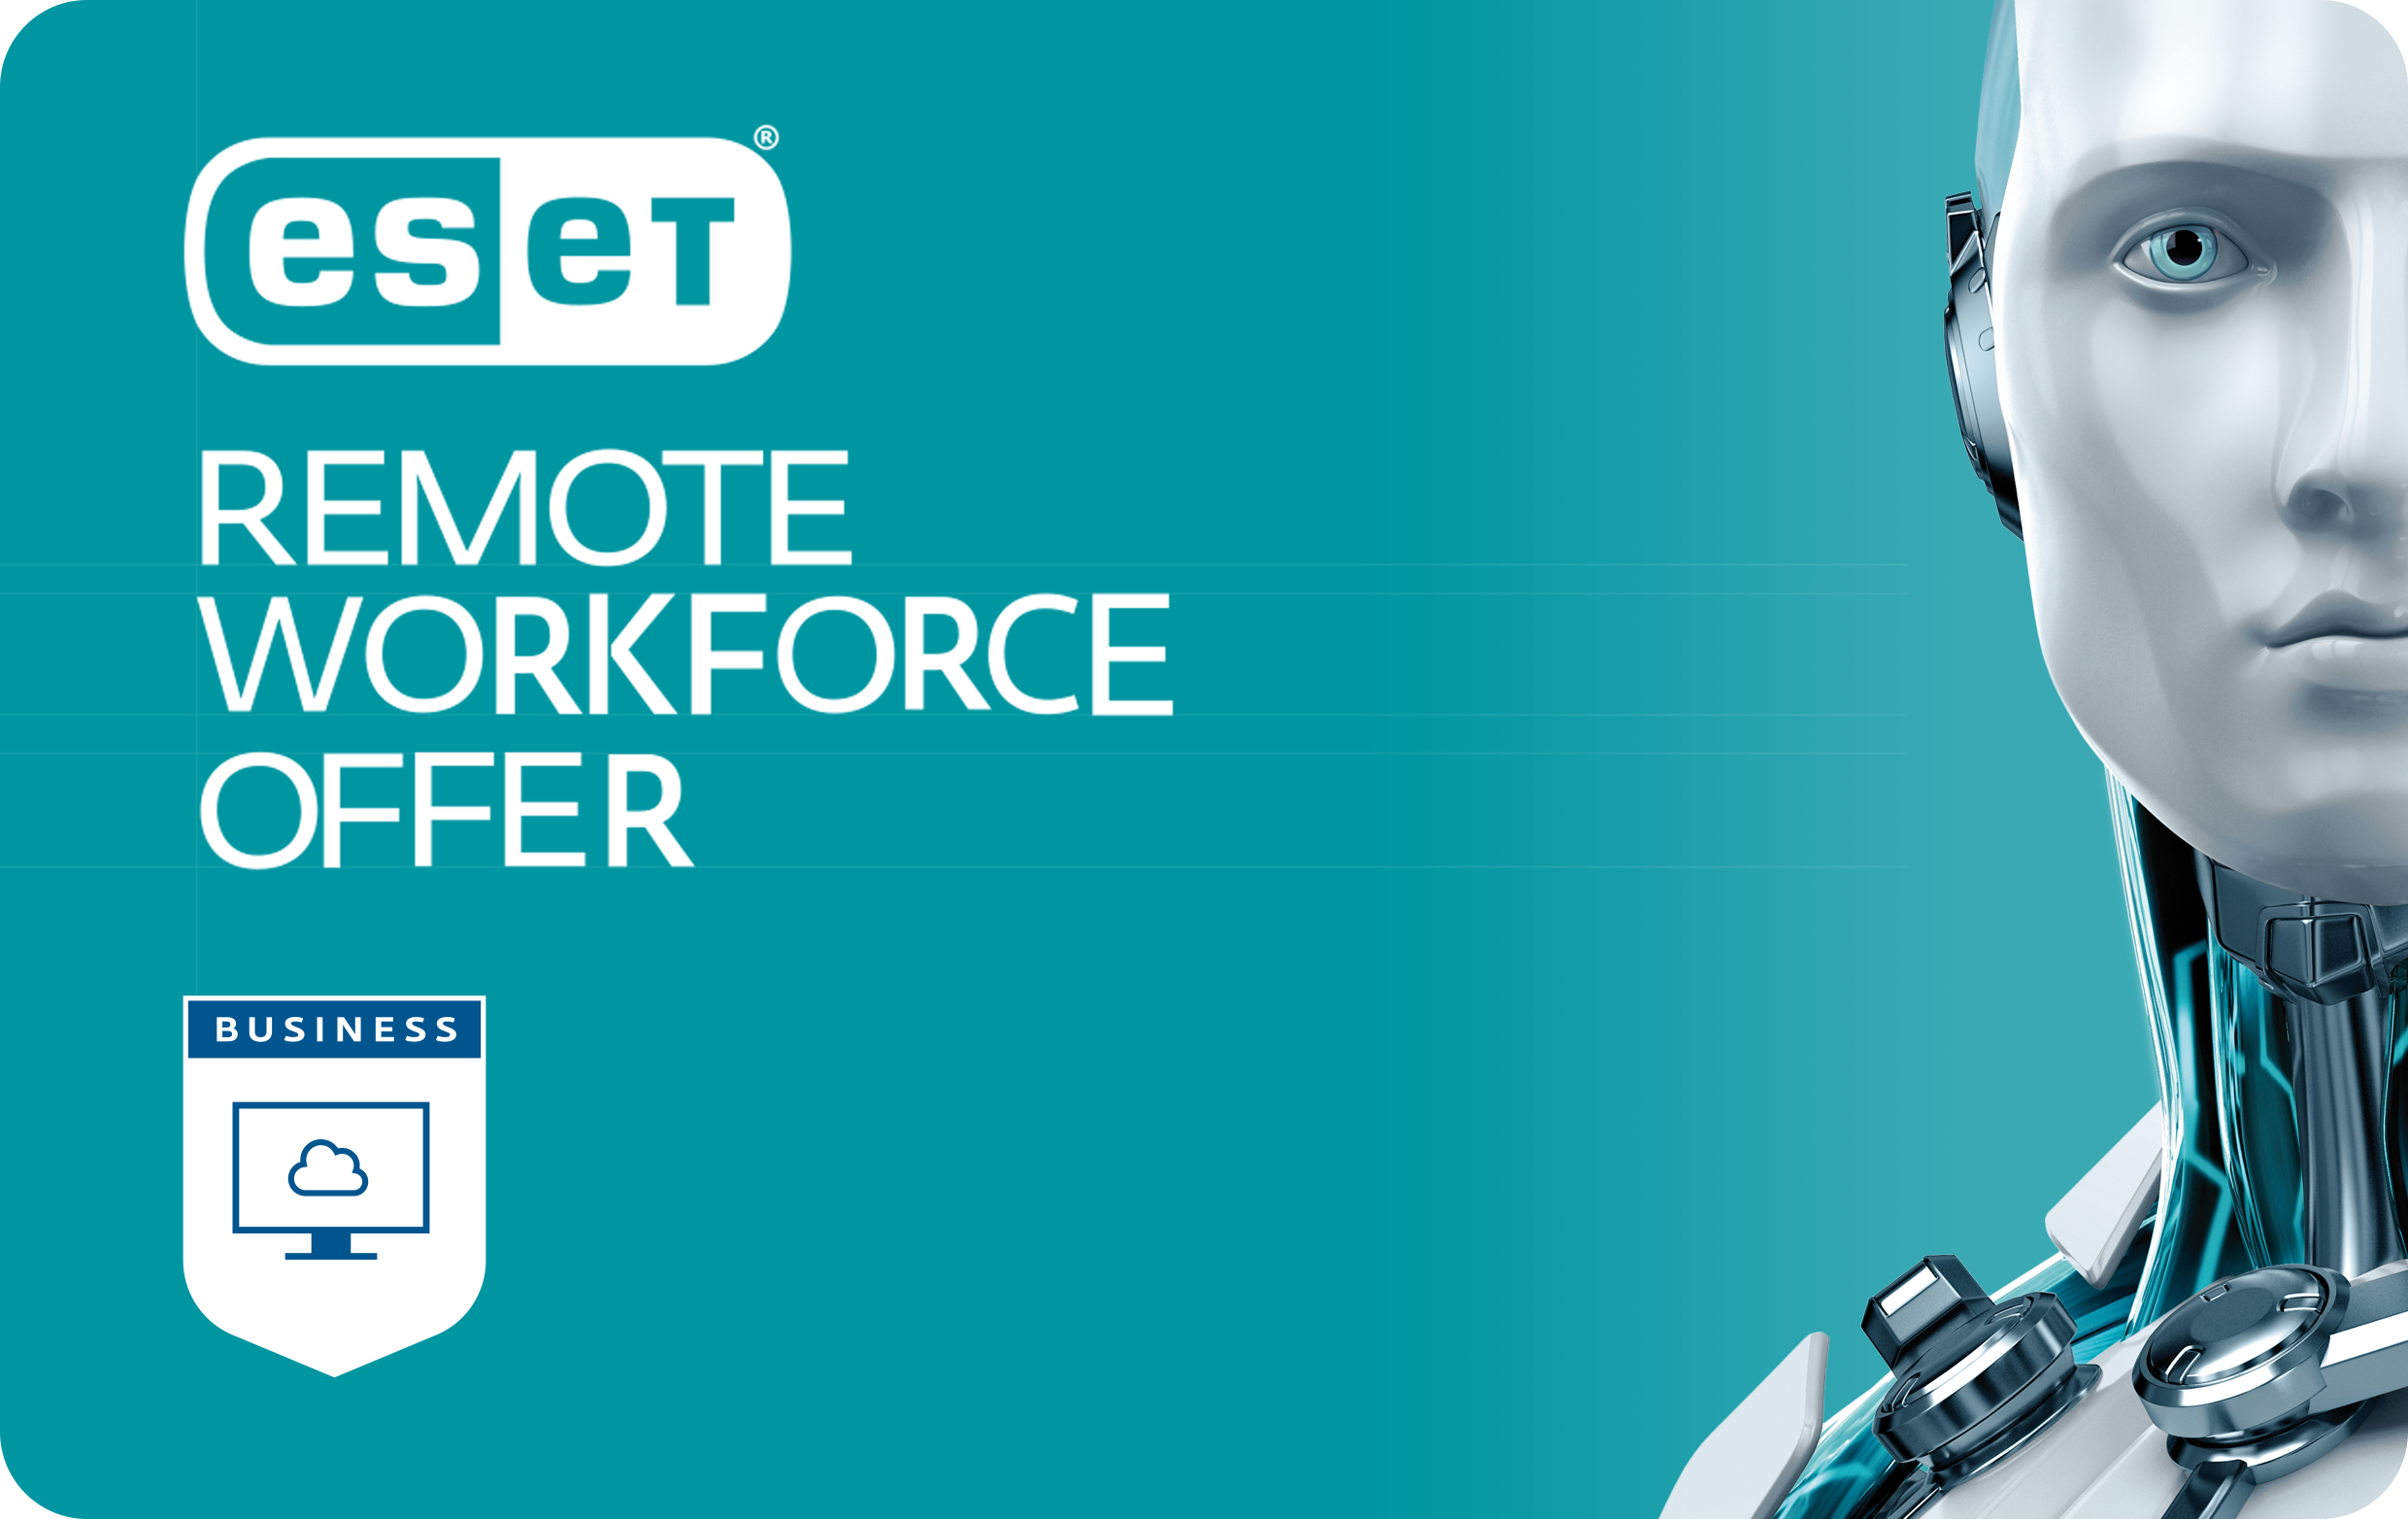 ESET Remote Workforce Offer